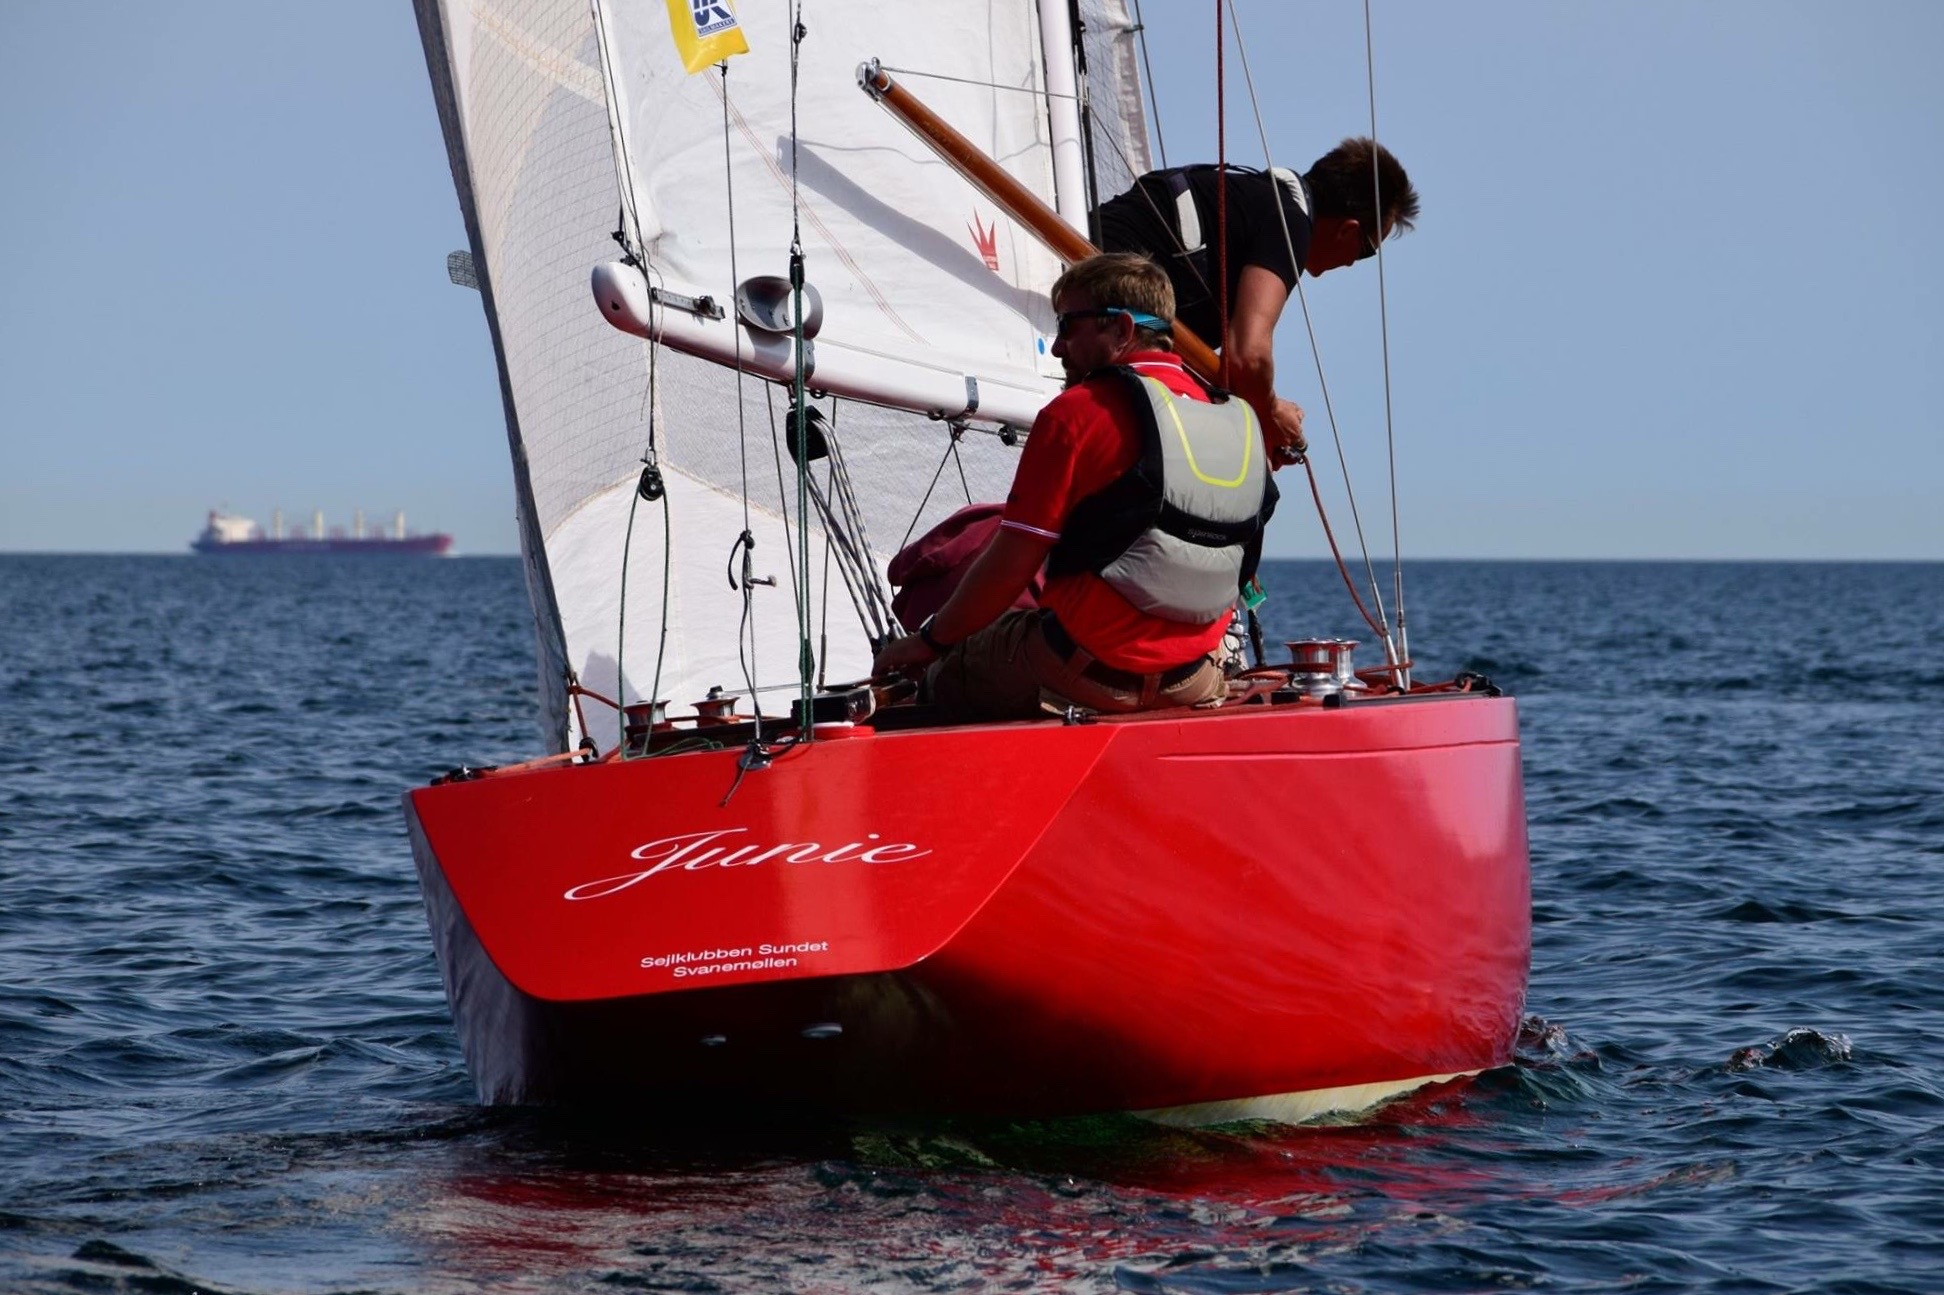 Close up picture of a red sailing boat